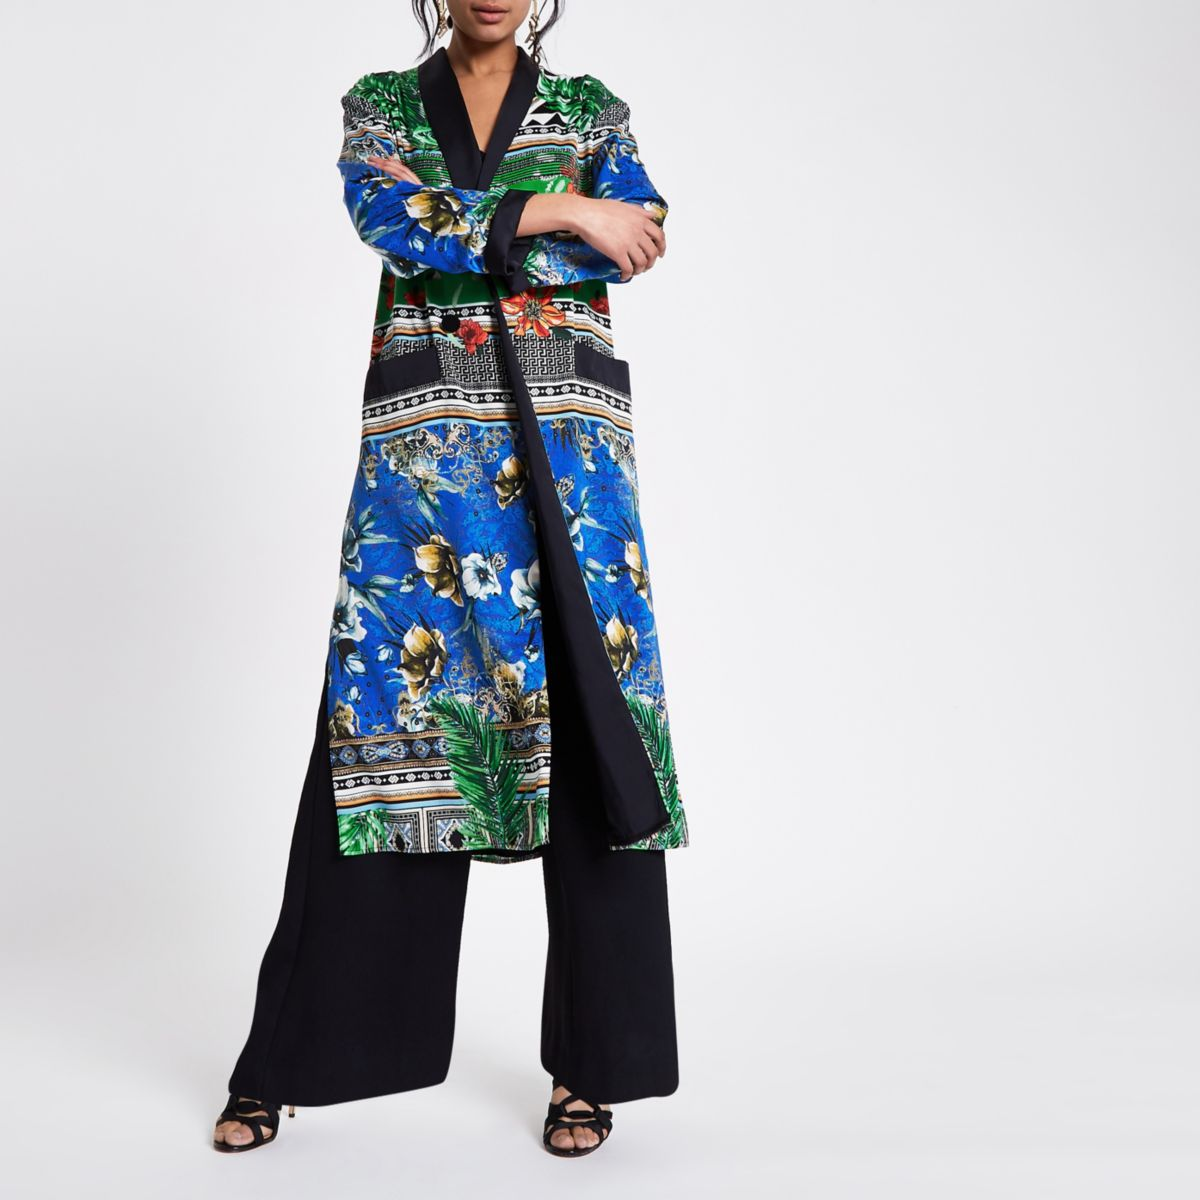 Green scarf print duster jacket